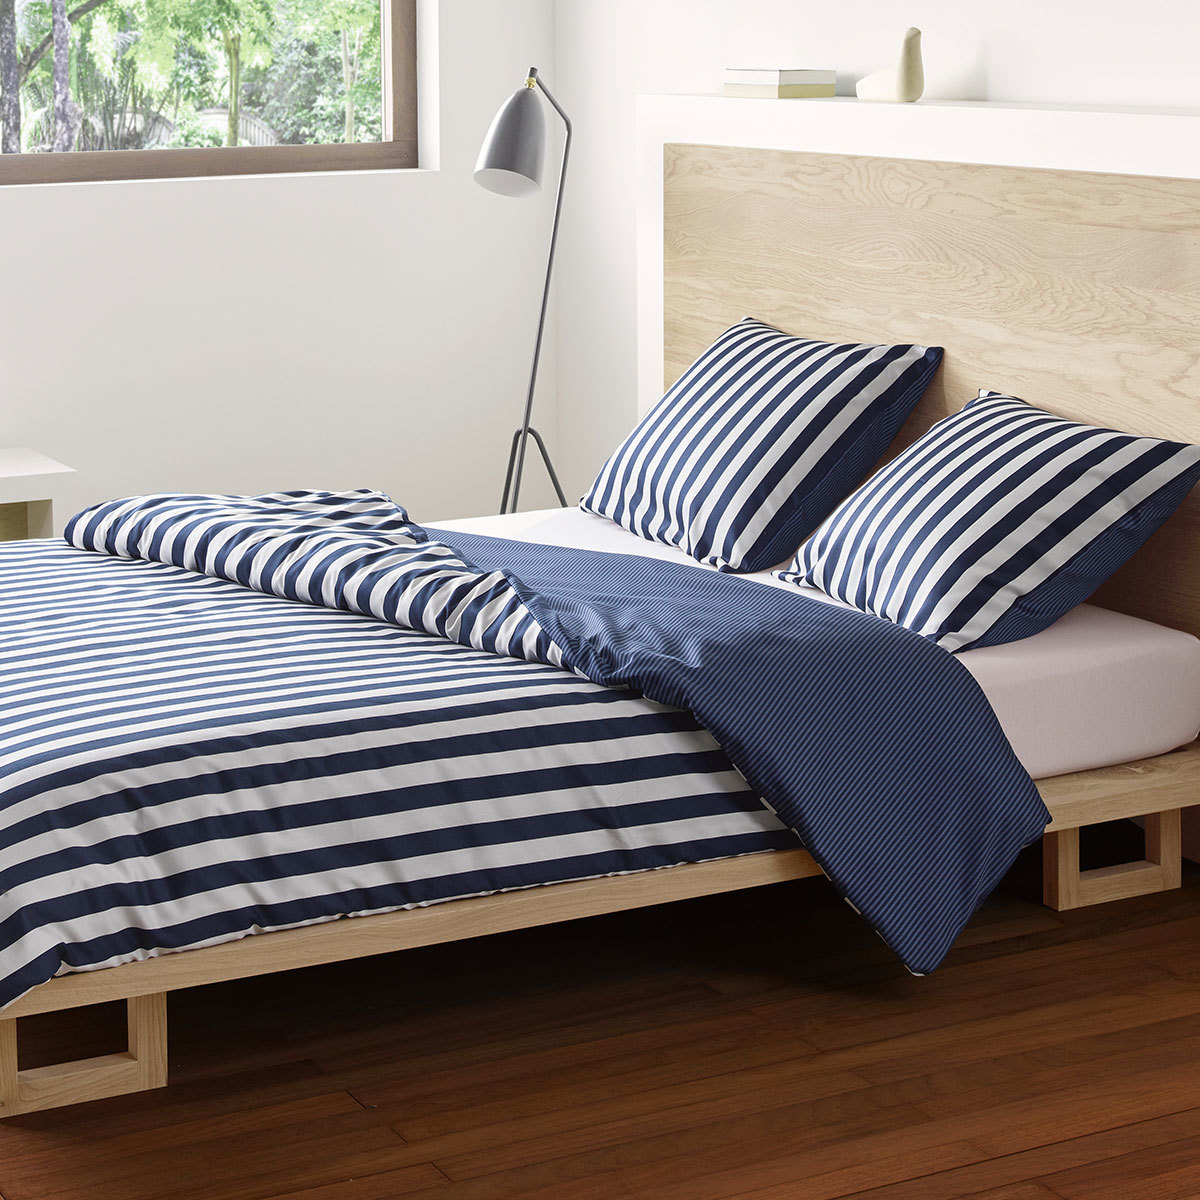 marc o polo bettw sche classic stripe indigo blue g nstig online kaufen bei bettwaren shop. Black Bedroom Furniture Sets. Home Design Ideas